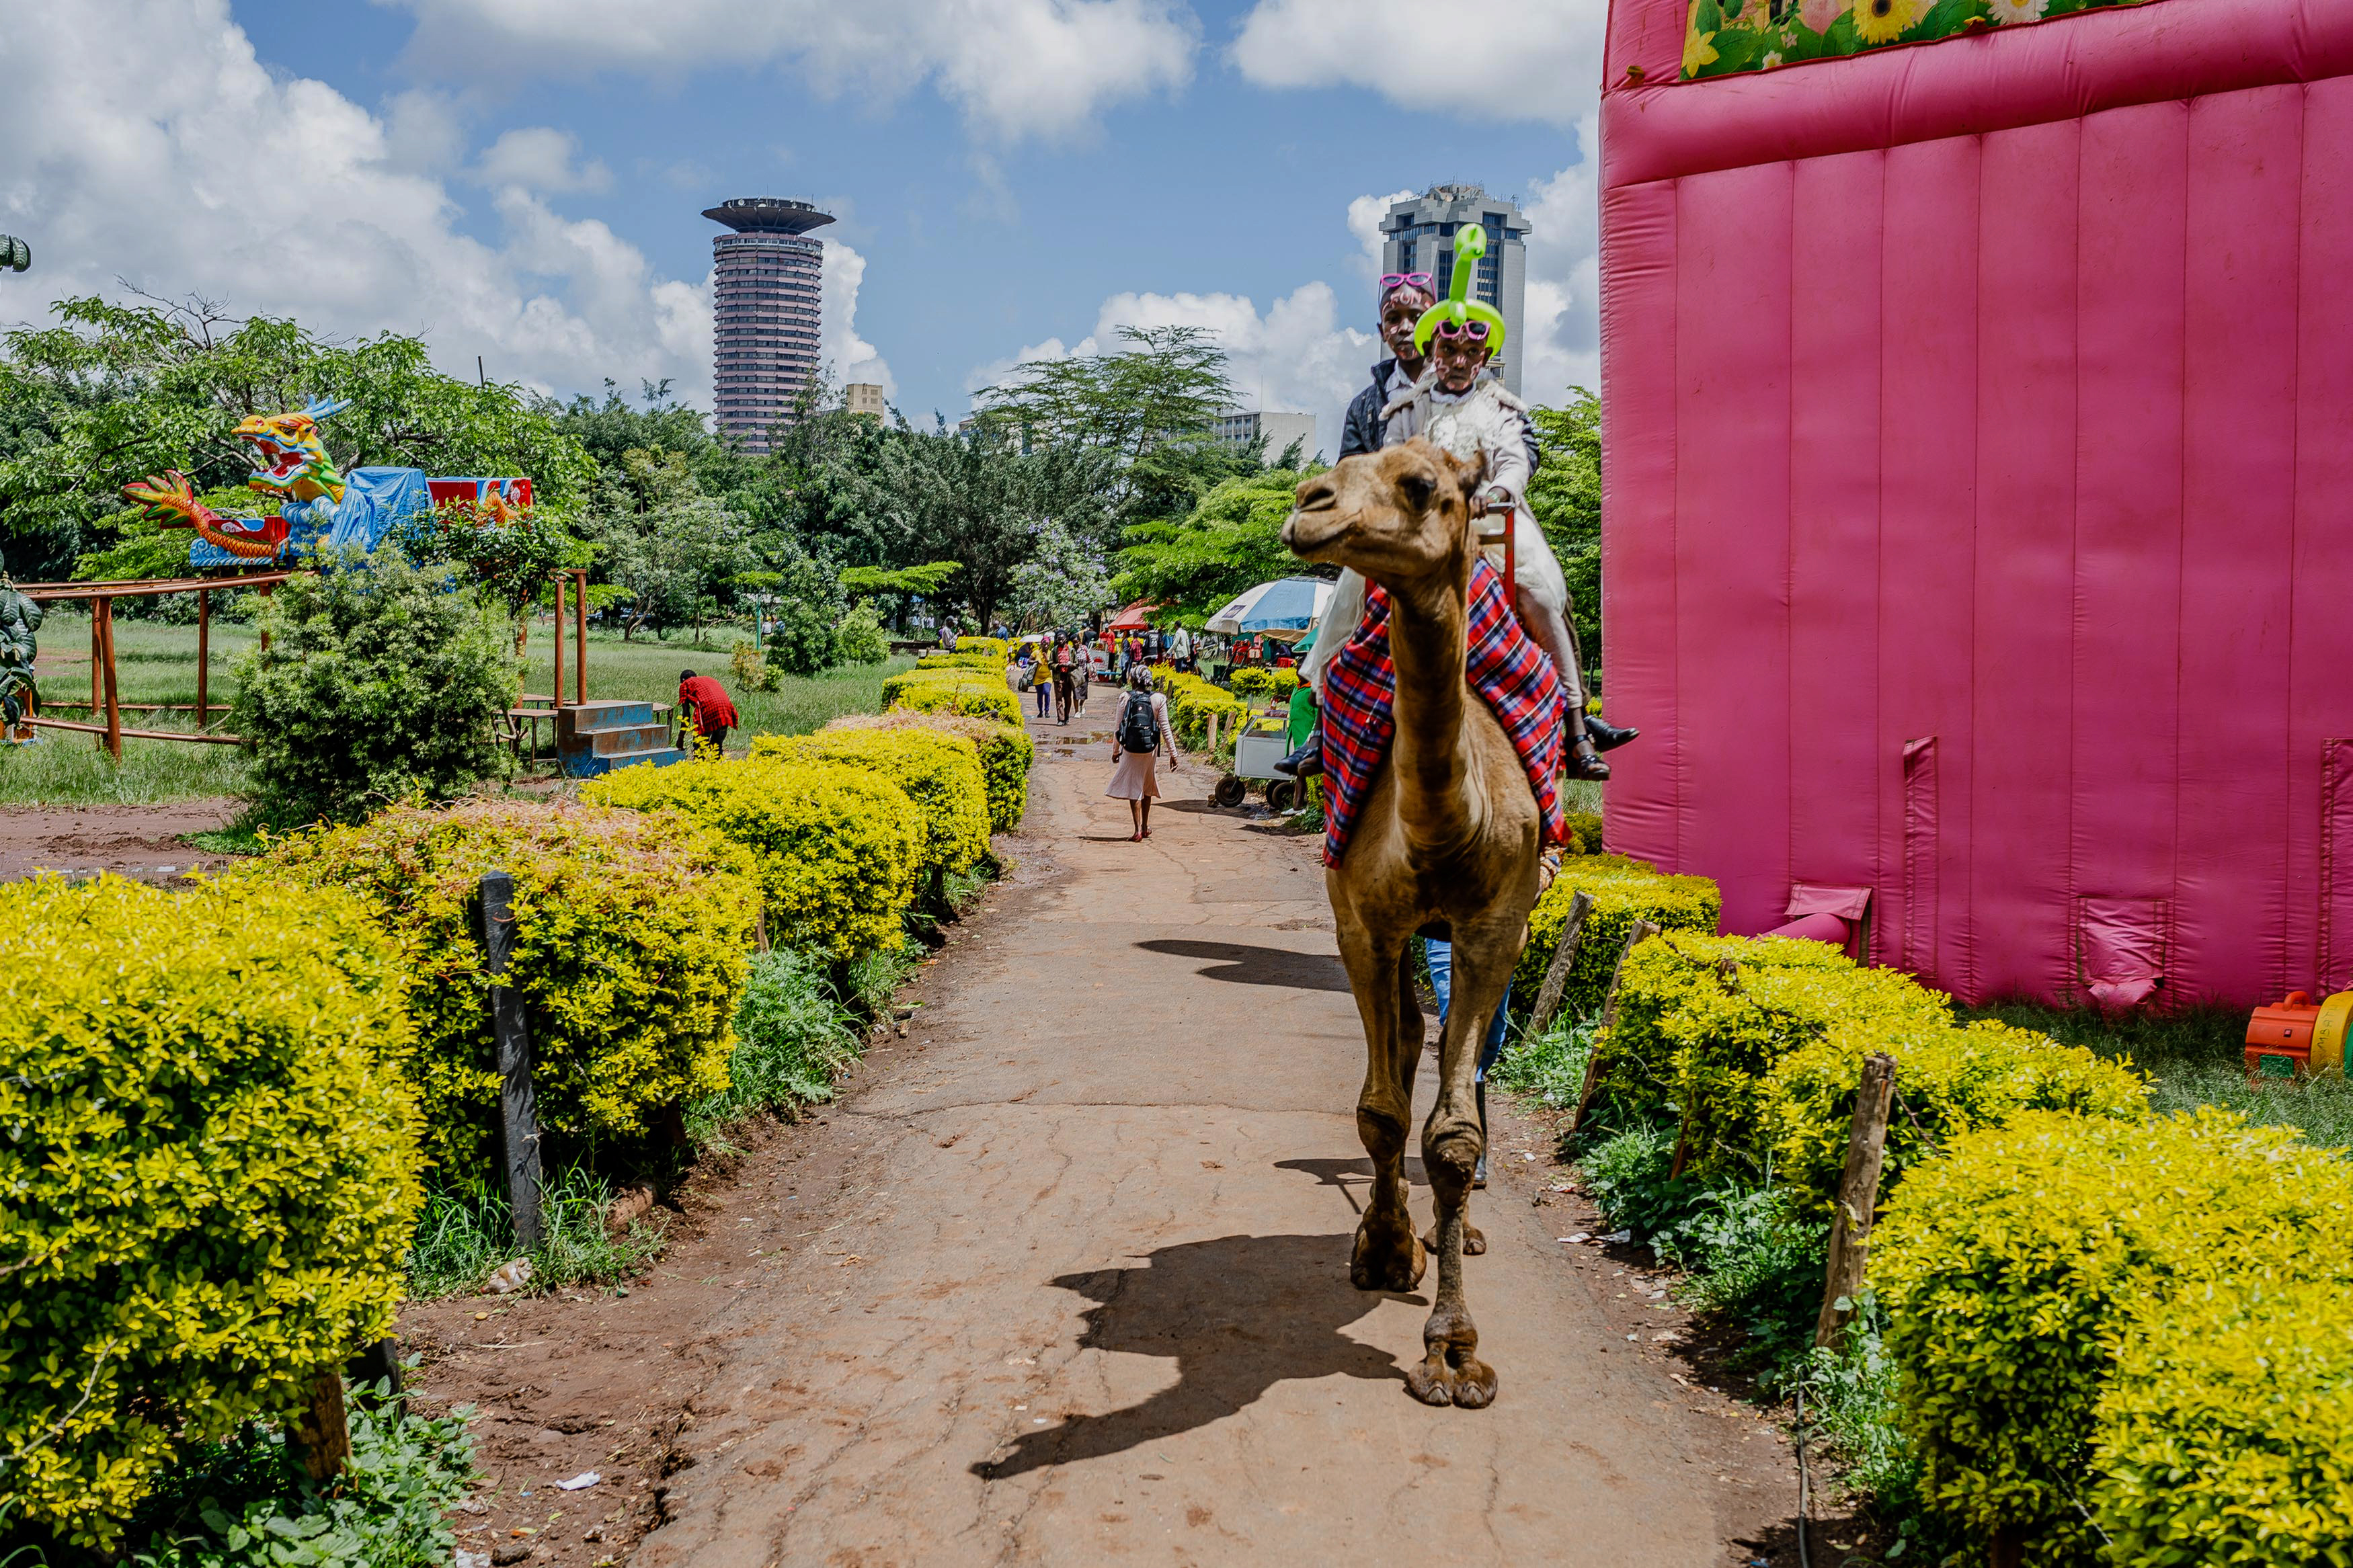 1. Out and about in Nairobi. 2. Camel riding at Uhuru Park.